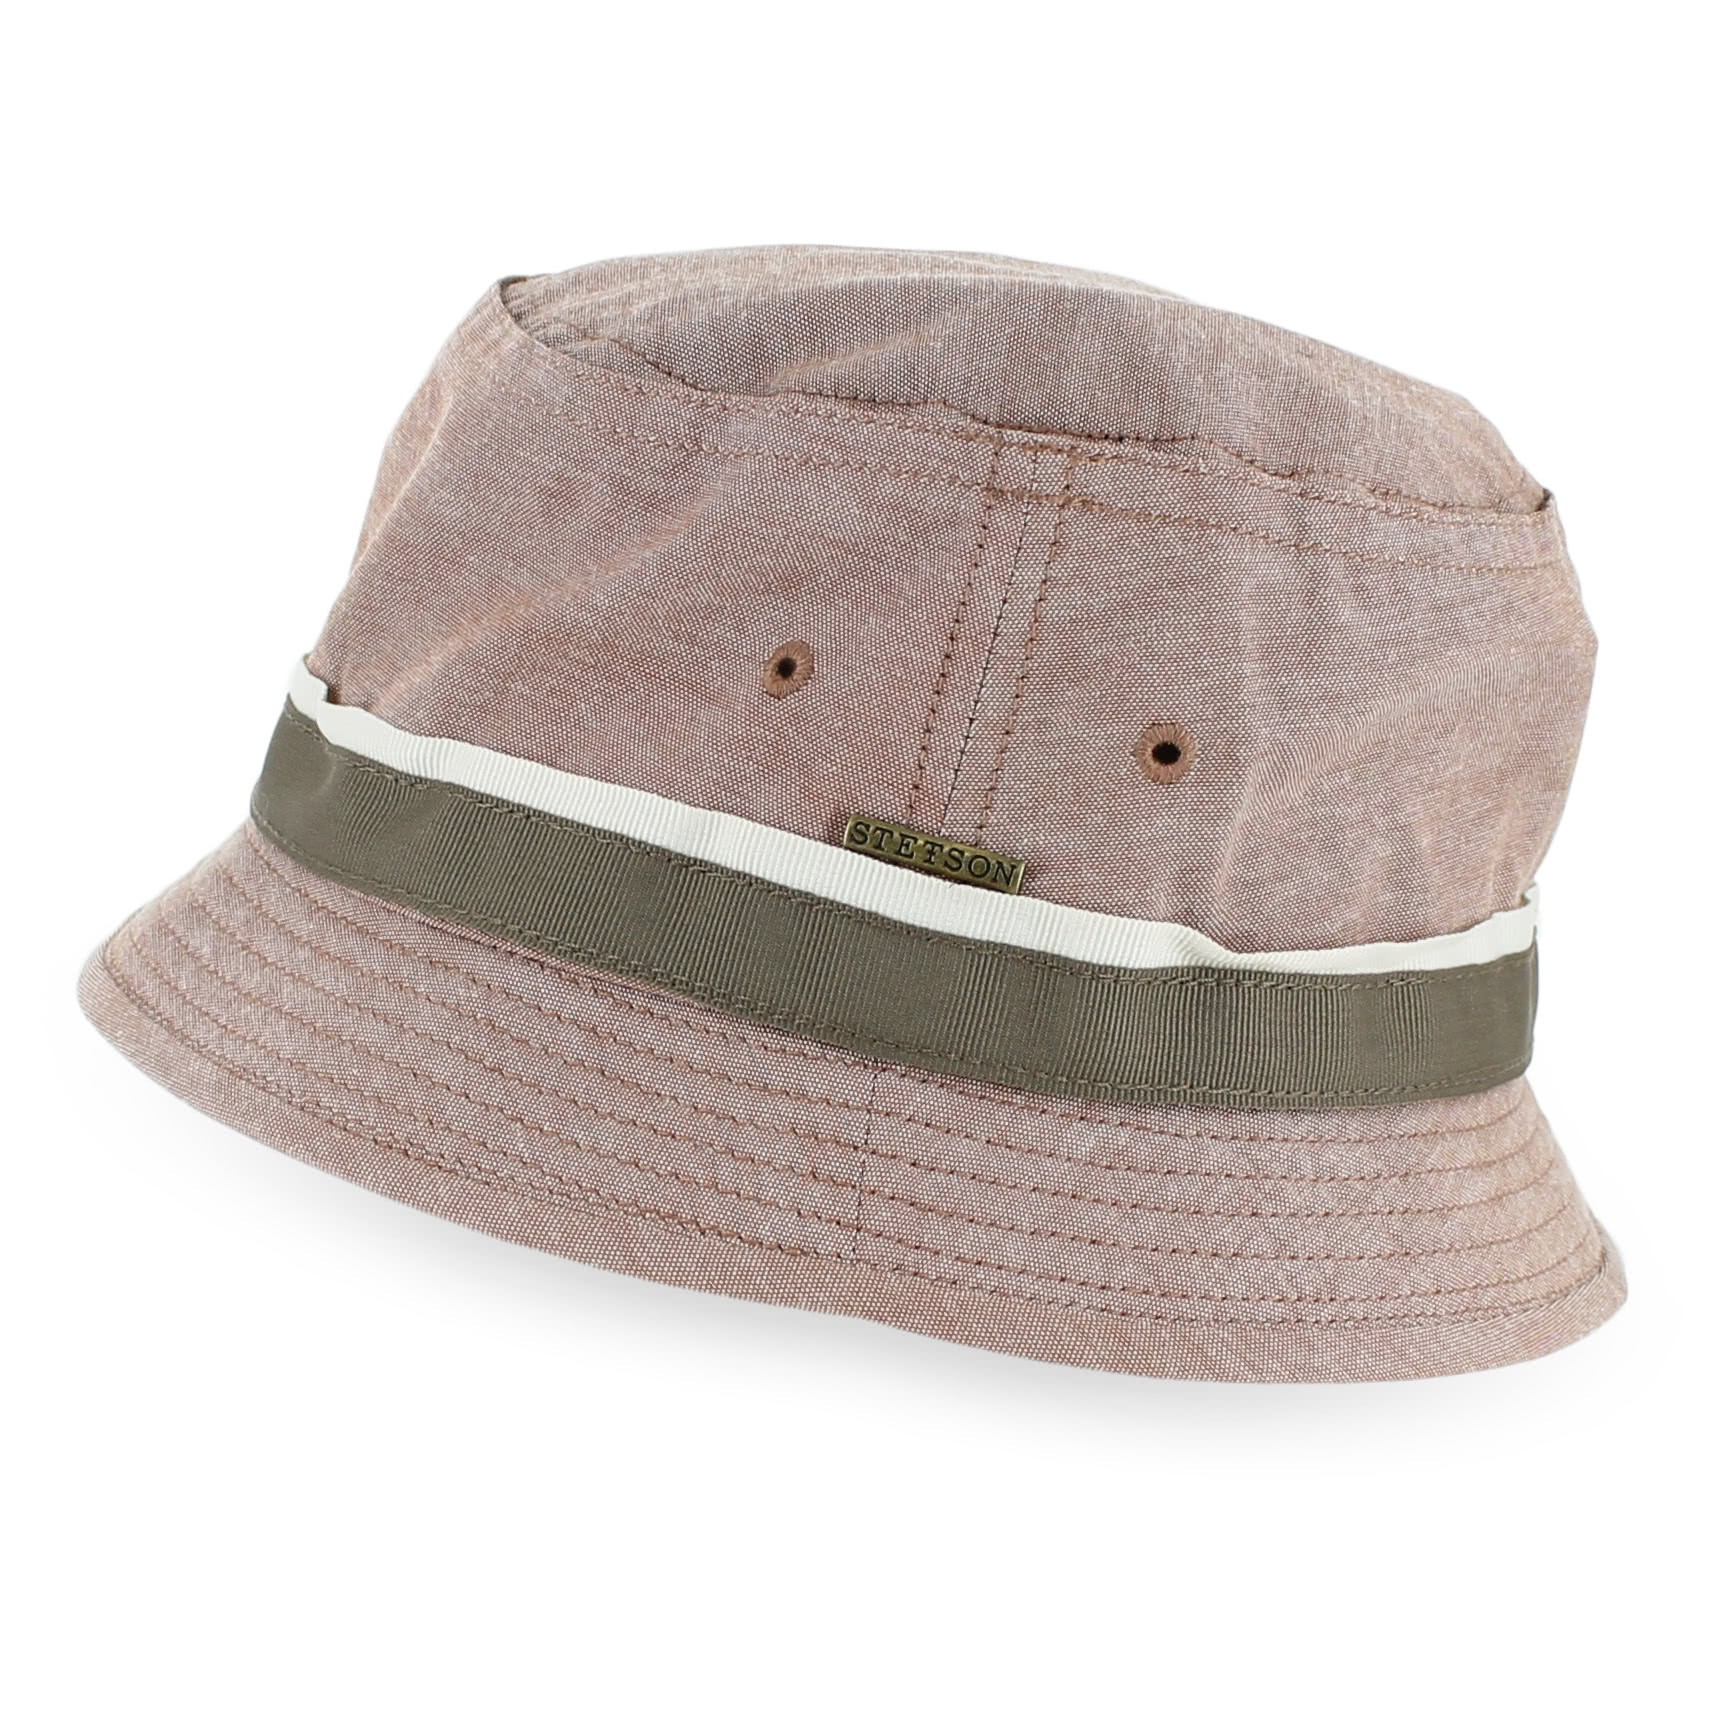 ecb4a4332 Stetson Oxford - Crushable Cotton Twill Bucket